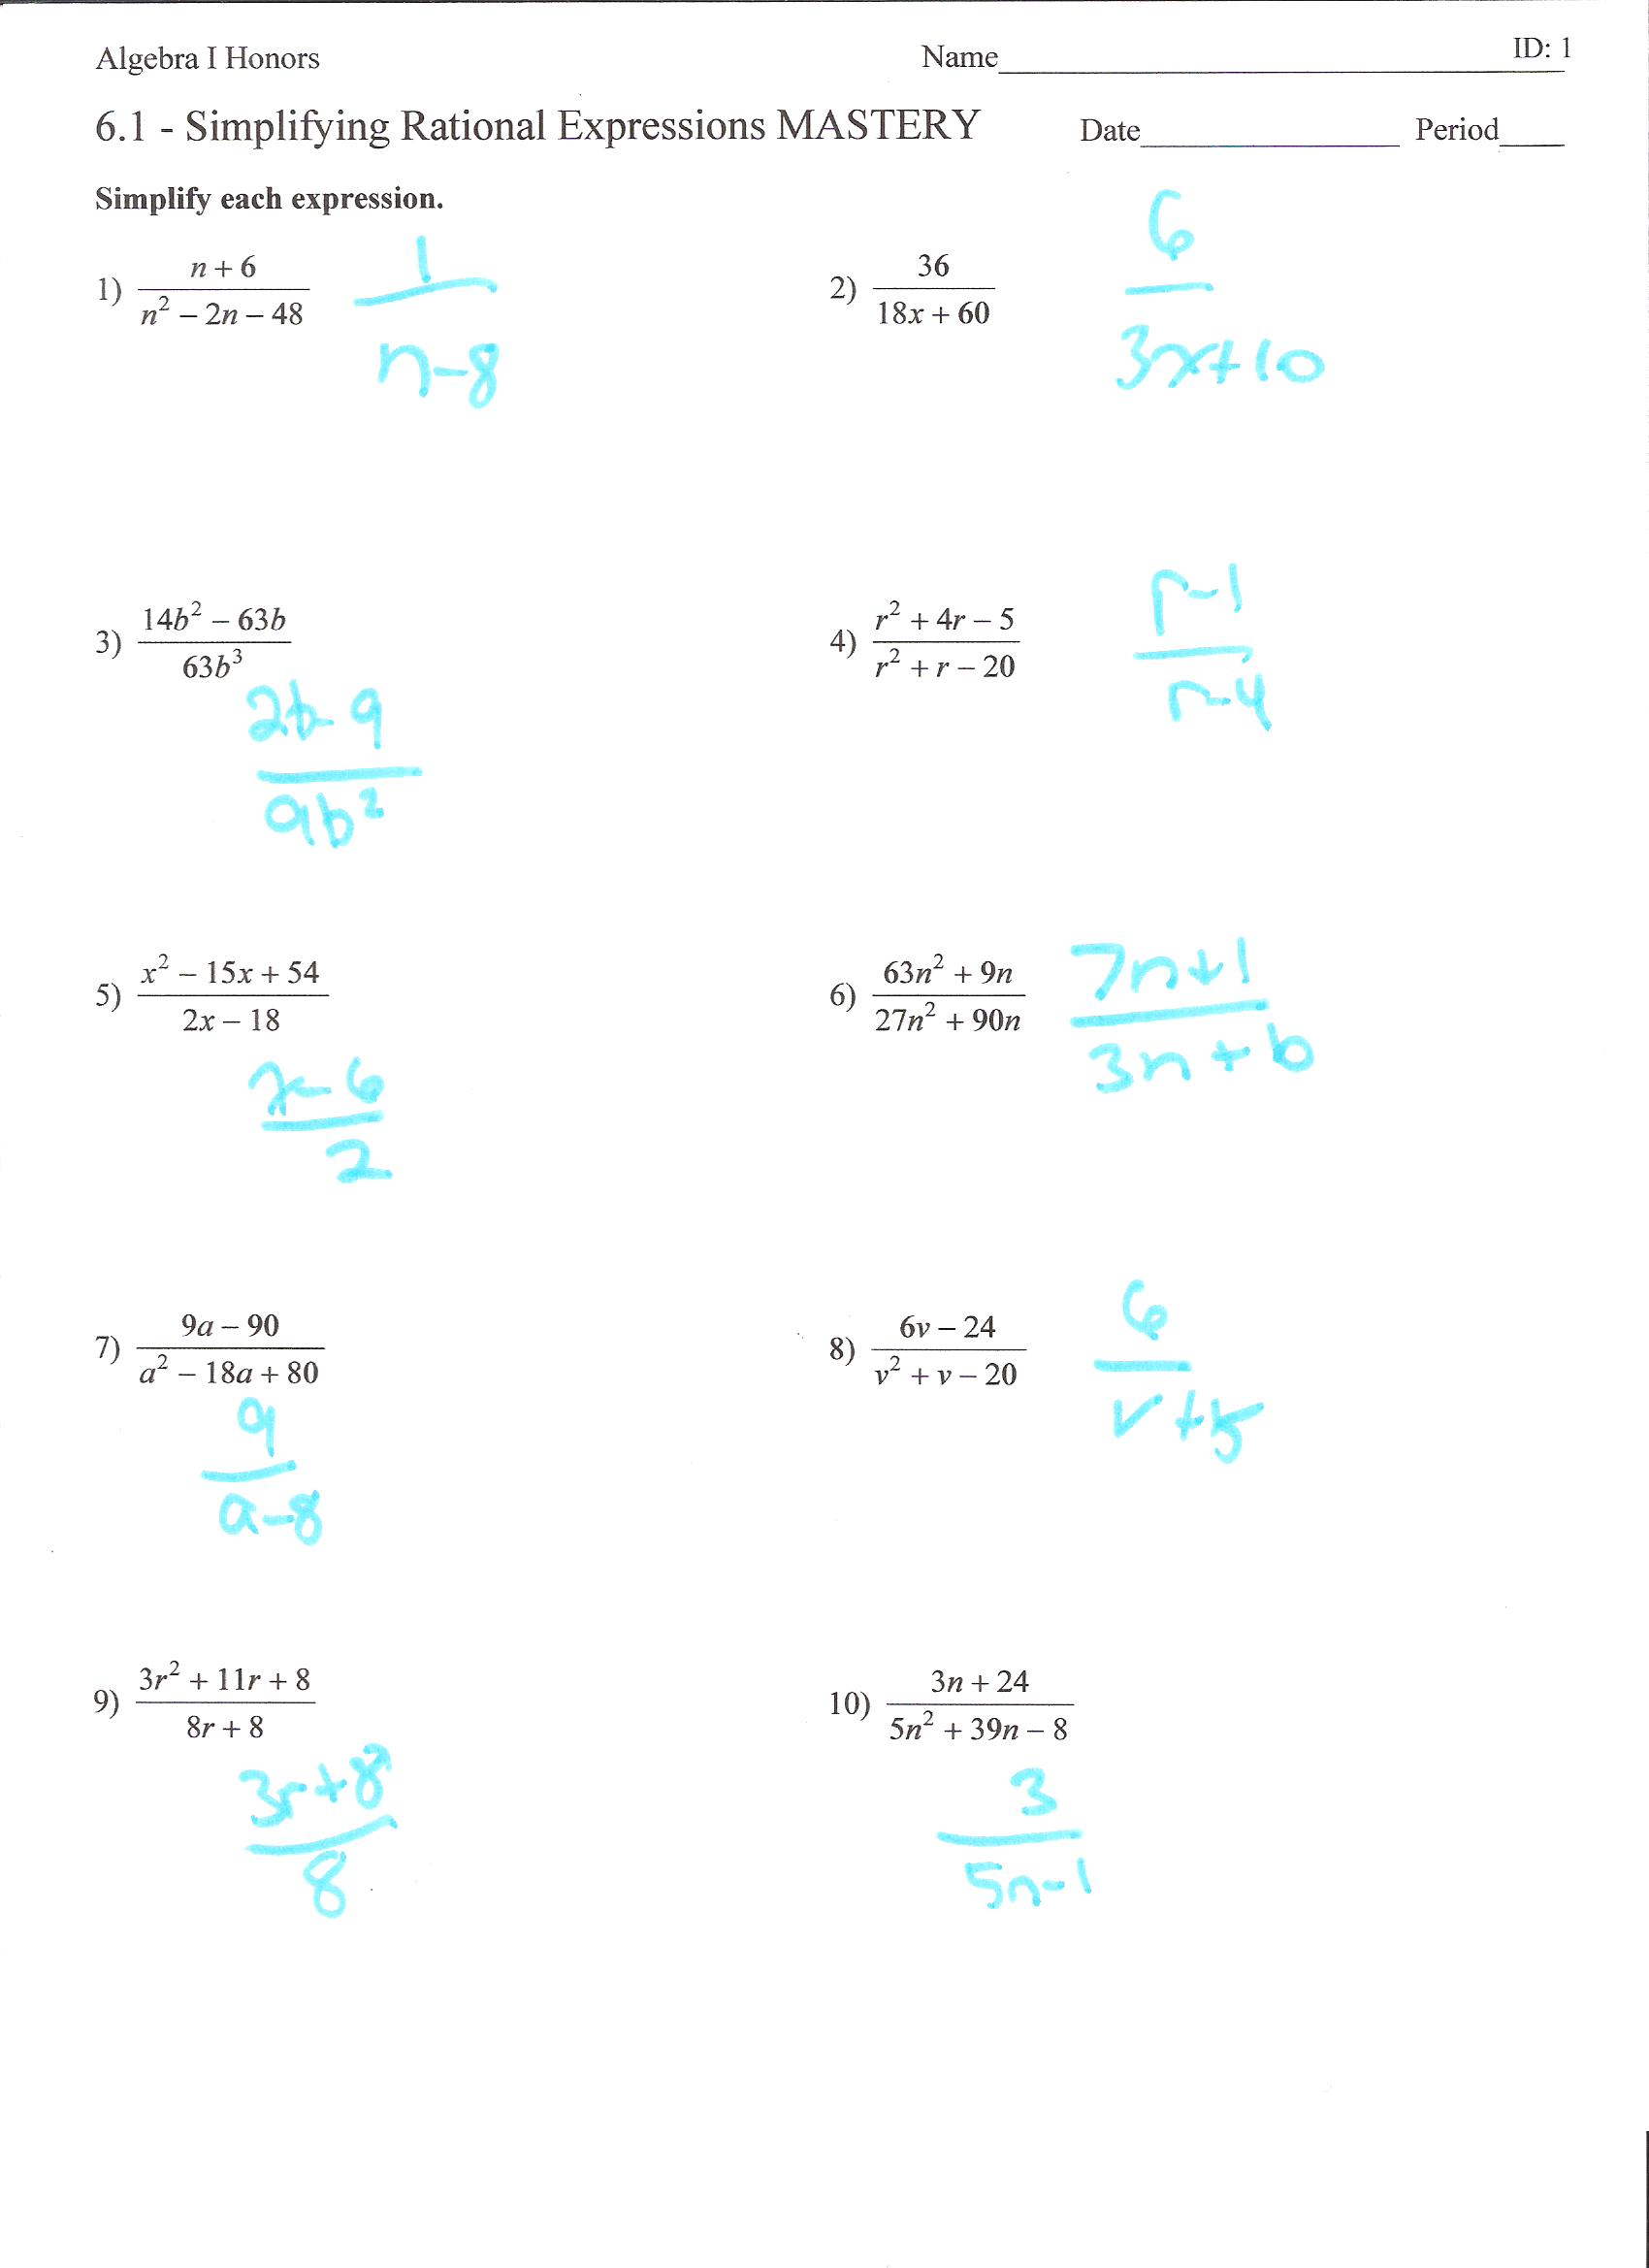 Simplifying Algebraic Fractions Worksheets – Algebraic Fractions Worksheet with Answers